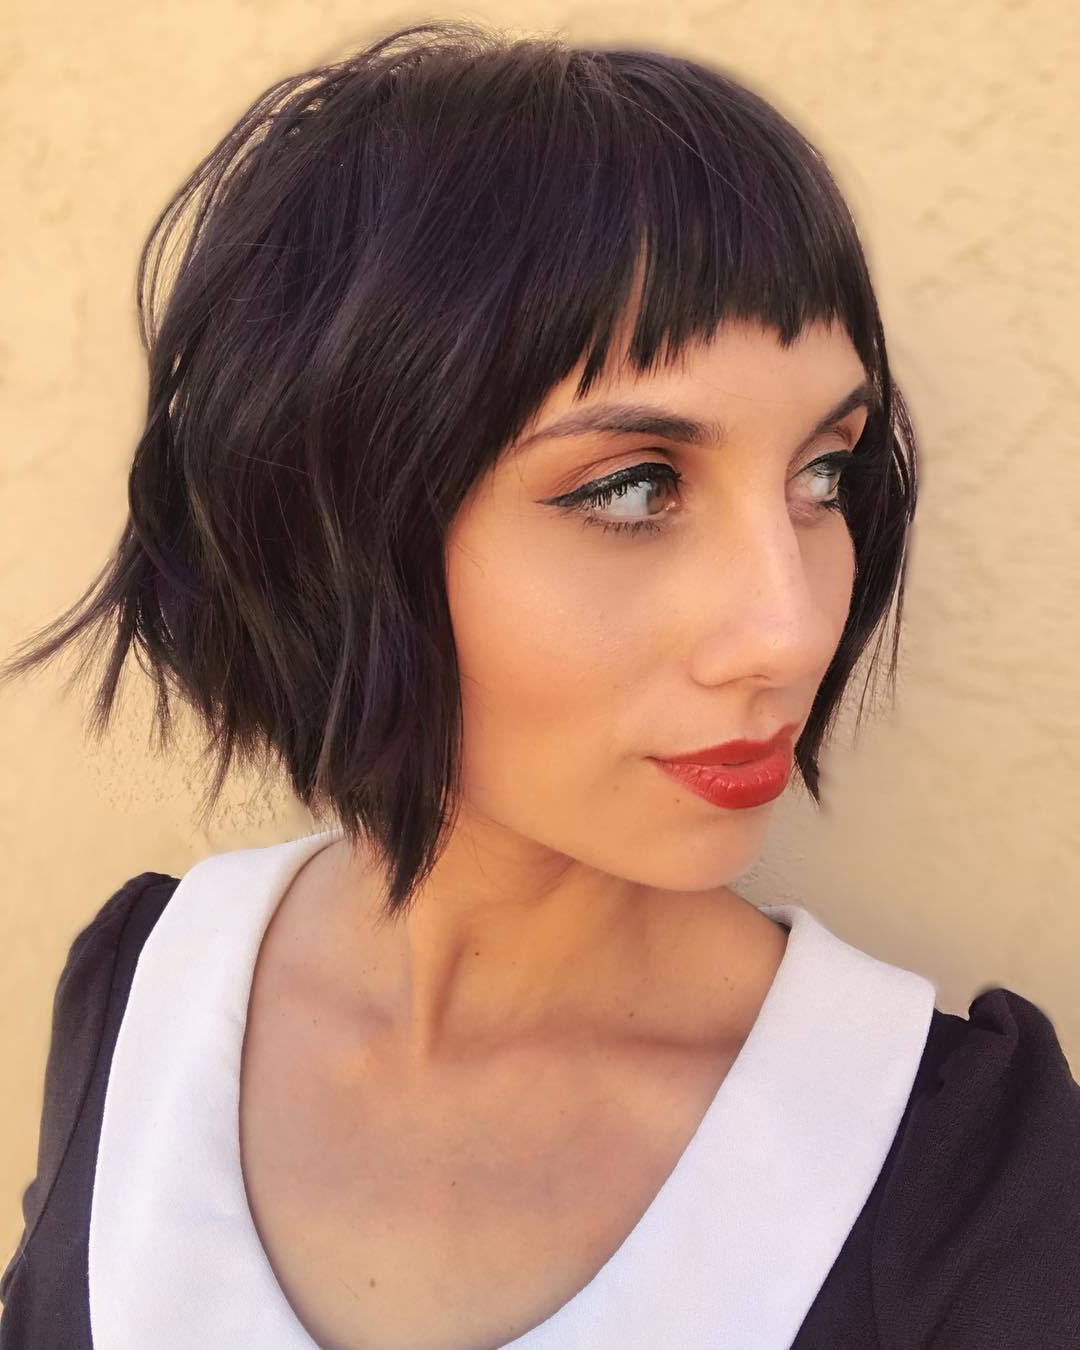 Fashionable Asymmetrical Feathered Bangs Hairstyles With Short Hair Pertaining To 55 Hot Short Bobs With Bangs Haircuts And Hairstyles For (View 14 of 20)